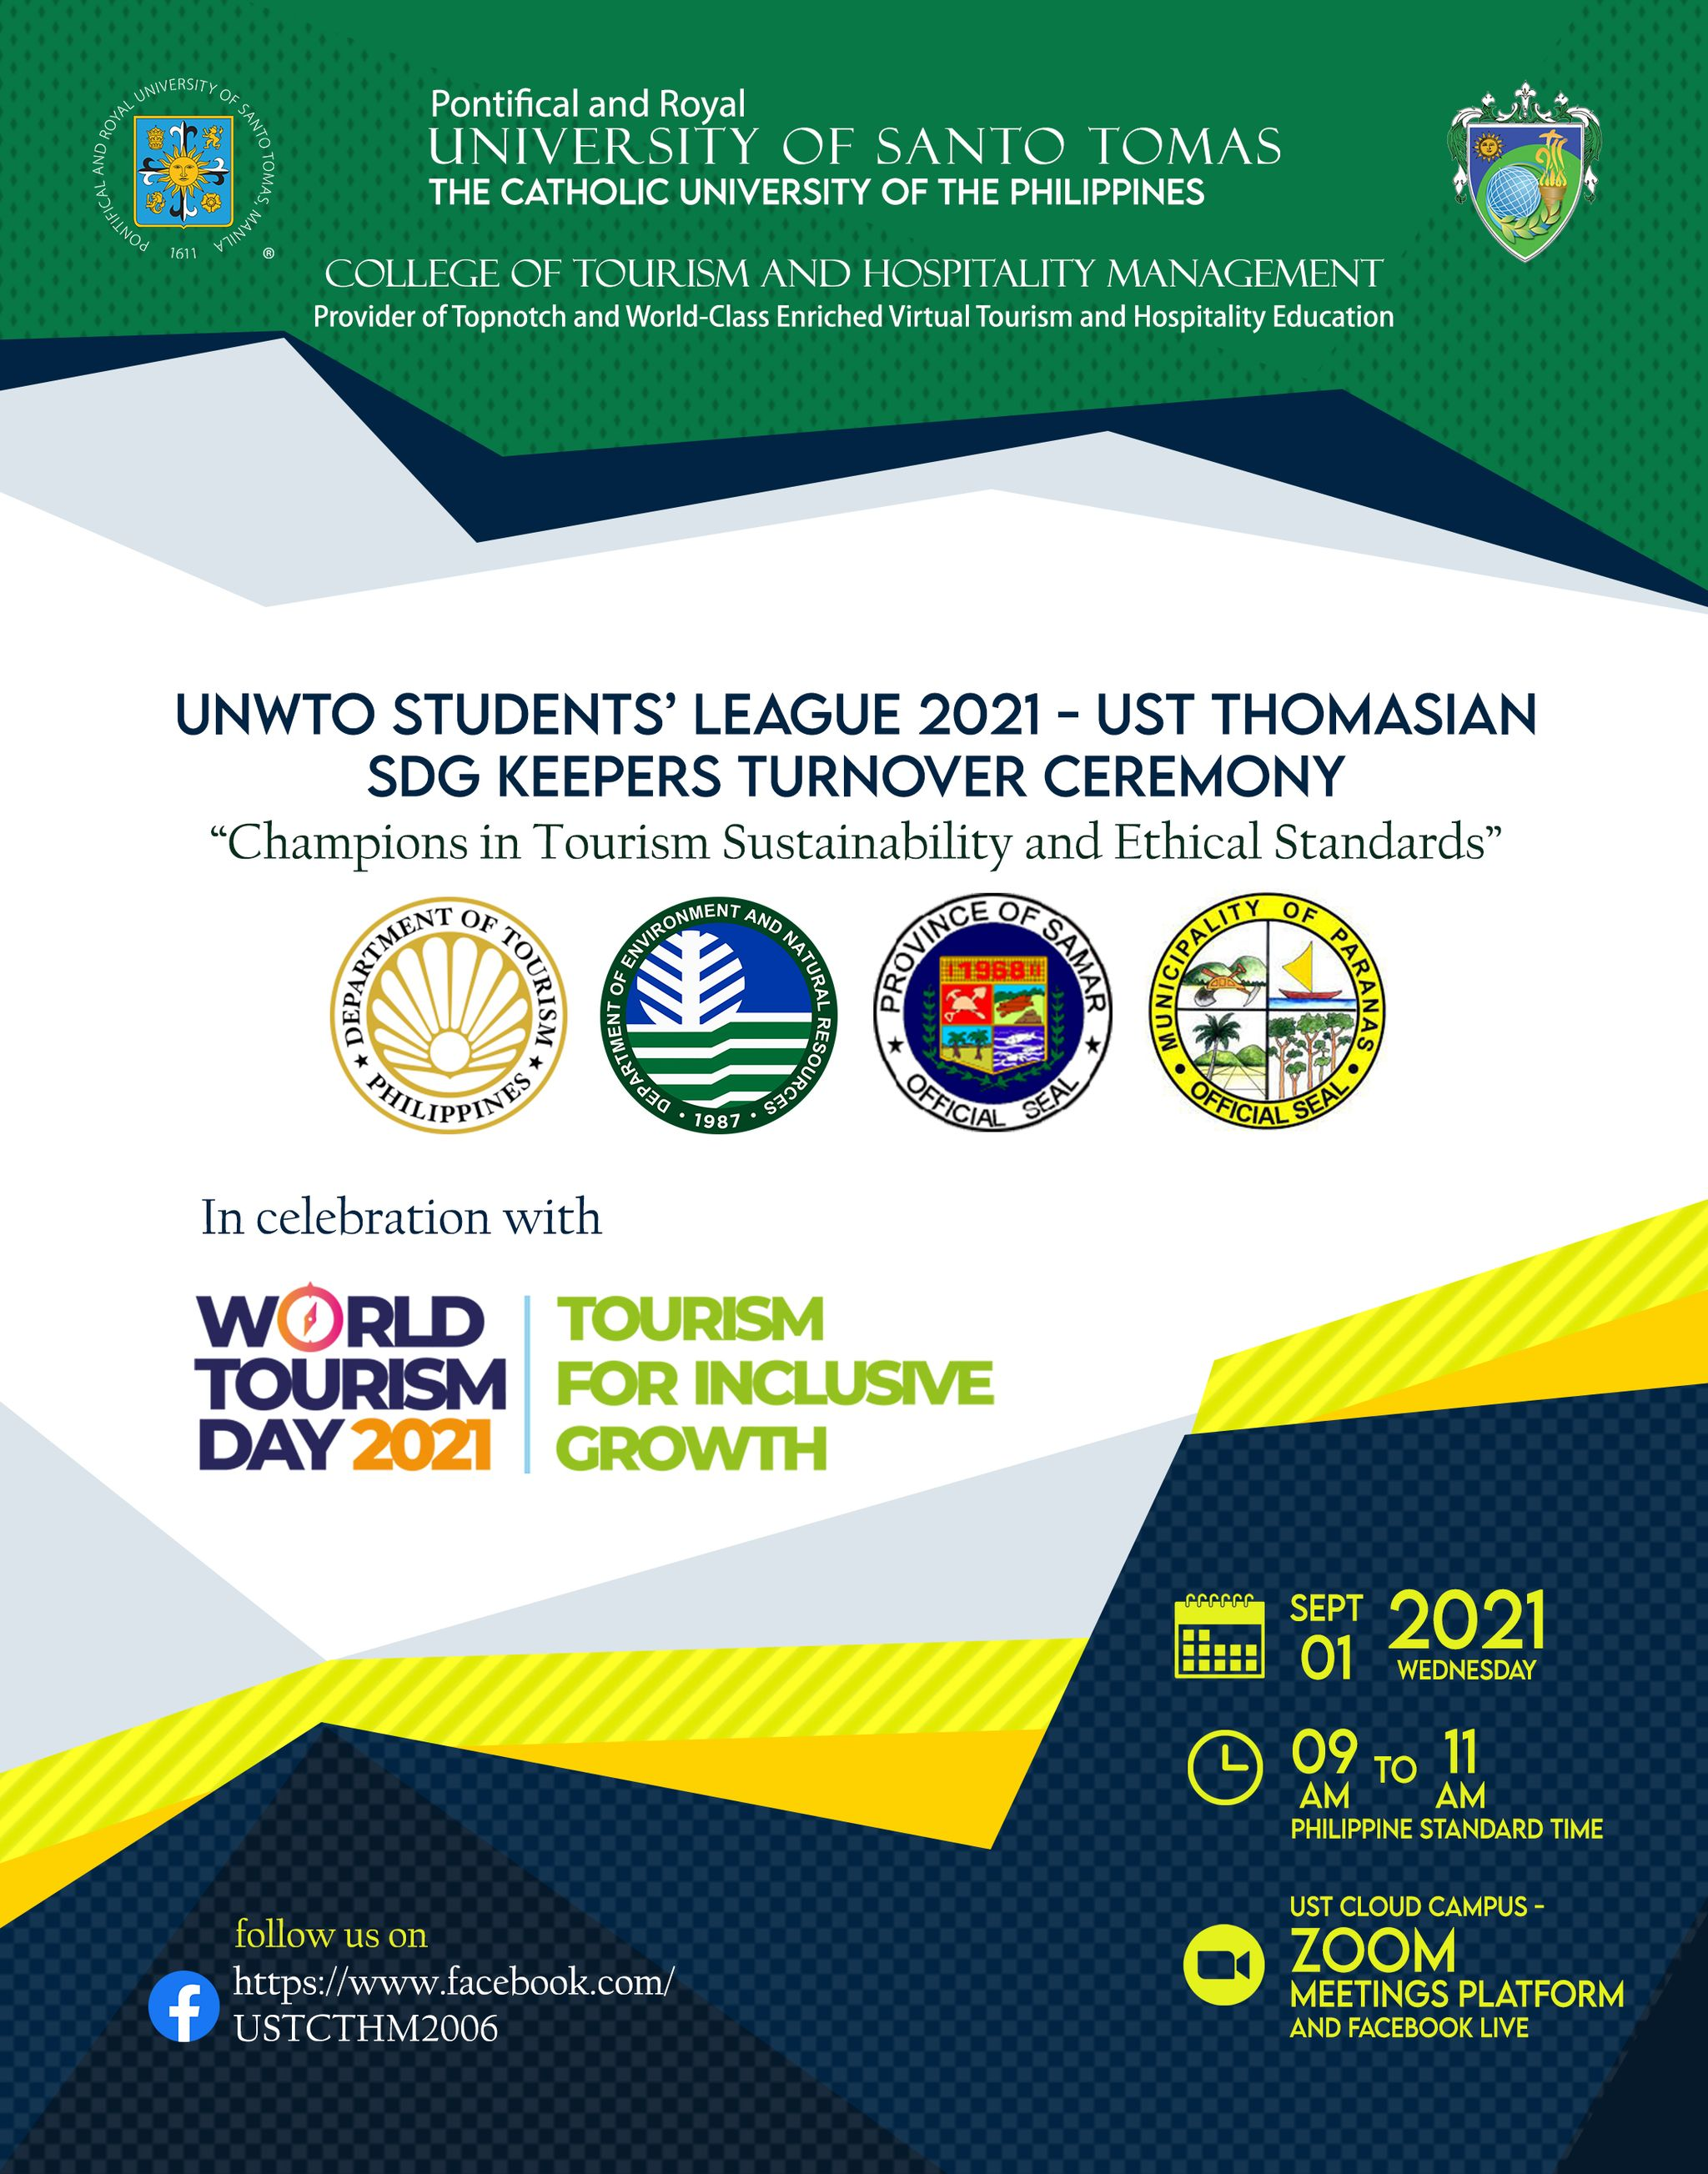 UNWTO. (2021). UNWTO Students' League. United Nations World Tourism Organization